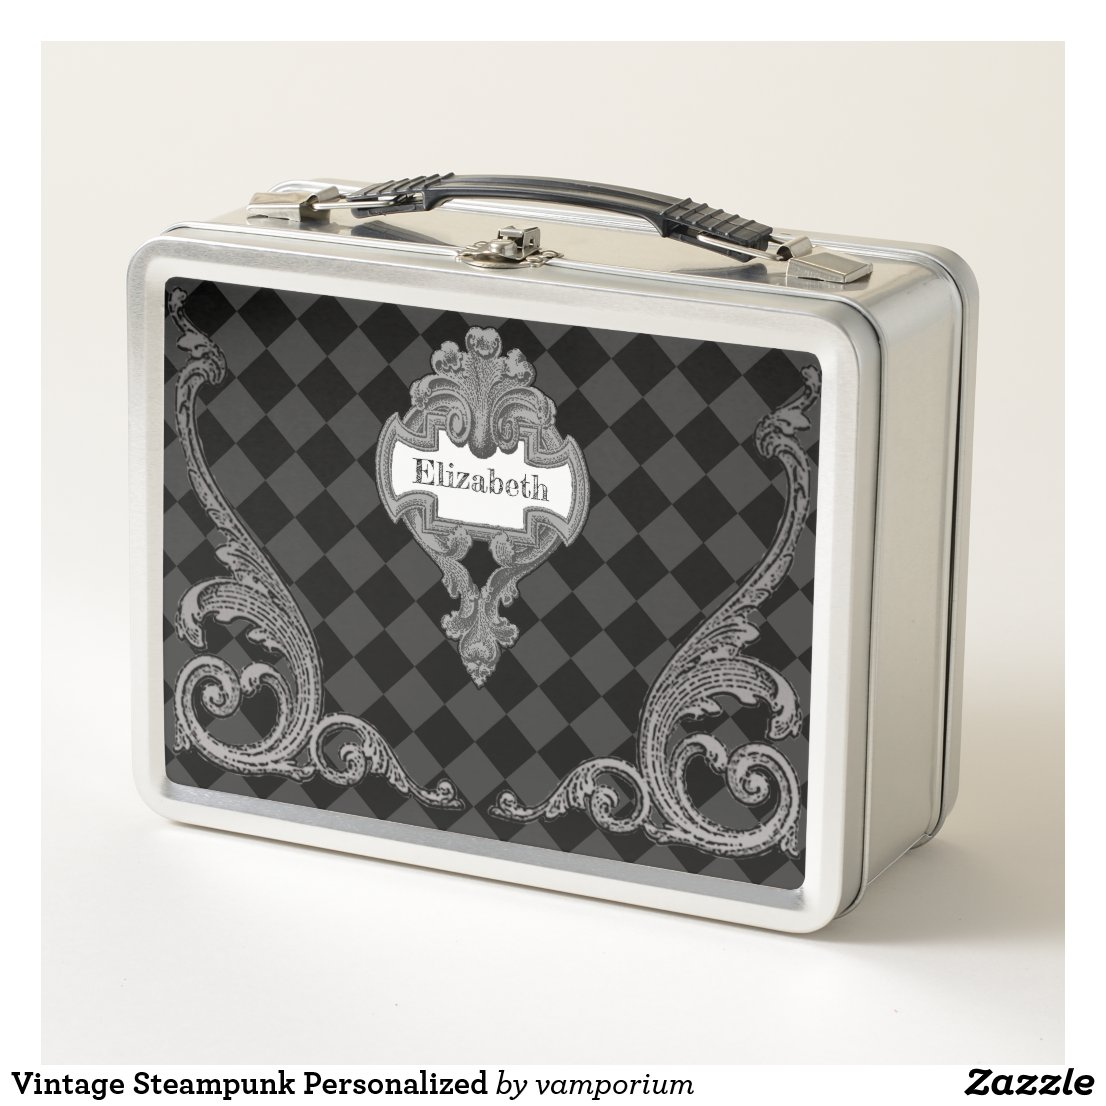 Vintage Steampunk Personalized Metal Lunch Box